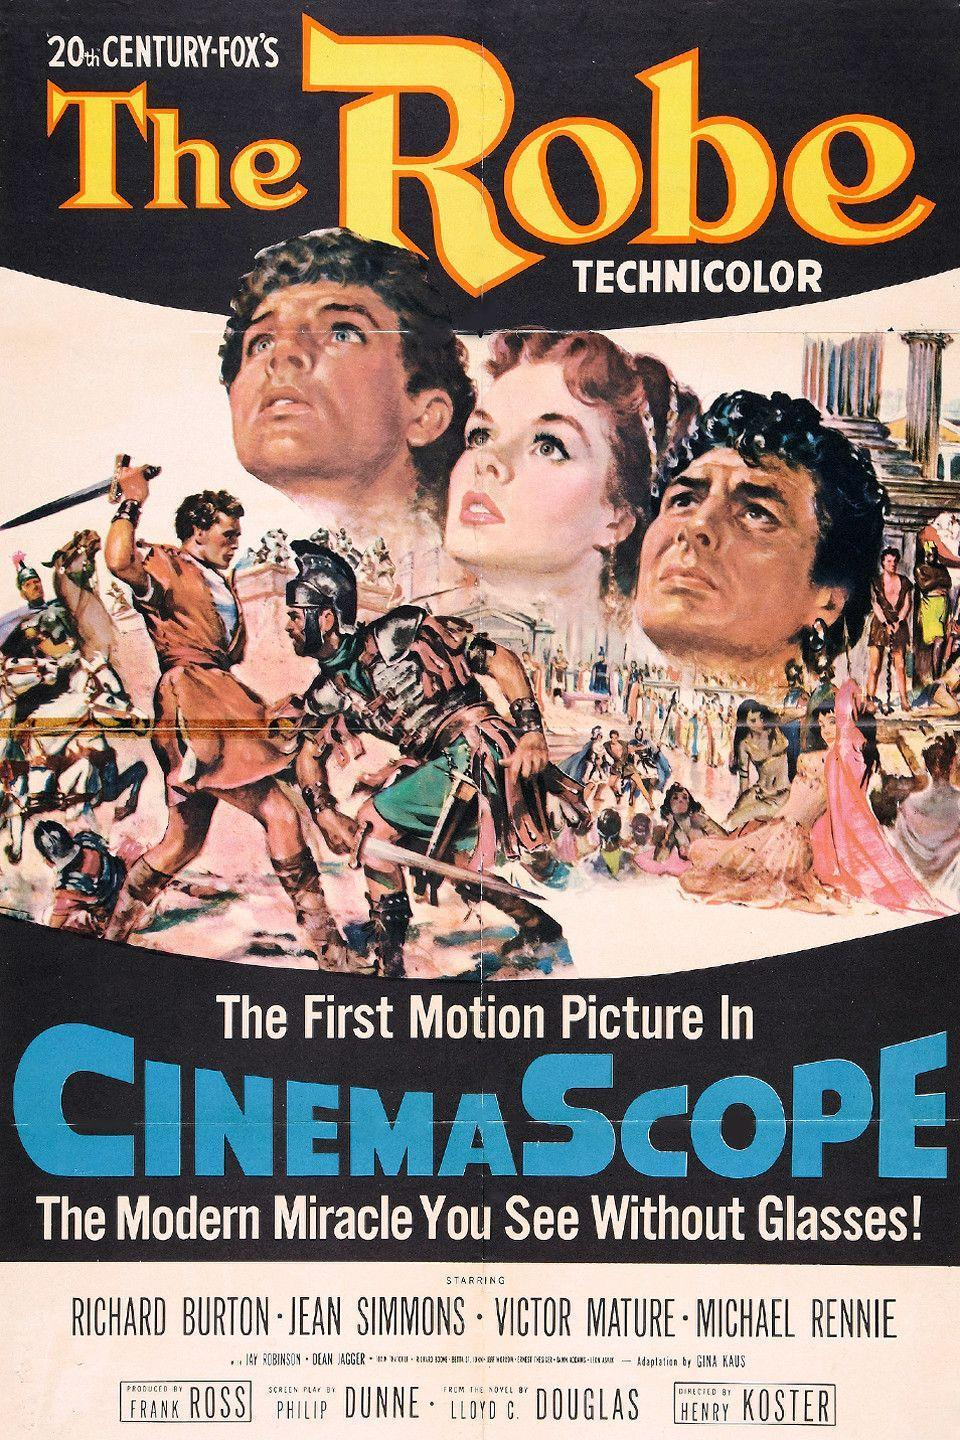 """<p>Nominated for five Academy Awards and winner of three, <em>The Robe </em>stars Richard Burton stars as Marcellus Galilo, a Roman commander who wins Christ's robe in a dice game during the crucifixion. The artifact <a href=""""https://www.womansday.com/life/g2100/bible-quotes/"""" rel=""""nofollow noopener"""" target=""""_blank"""" data-ylk=""""slk:alters his life forever"""" class=""""link rapid-noclick-resp"""">alters his life forever</a>.</p><p><a class=""""link rapid-noclick-resp"""" href=""""https://www.amazon.com/Robe-Jean-Simmons/dp/B004FWZ1Y4/ref=tmm_aiv_swatch_1?_encoding=UTF8&tag=syn-yahoo-20&ascsubtag=%5Bartid%7C10070.g.16643651%5Bsrc%7Cyahoo-us"""" rel=""""nofollow noopener"""" target=""""_blank"""" data-ylk=""""slk:STREAM NOW"""">STREAM NOW</a></p>"""